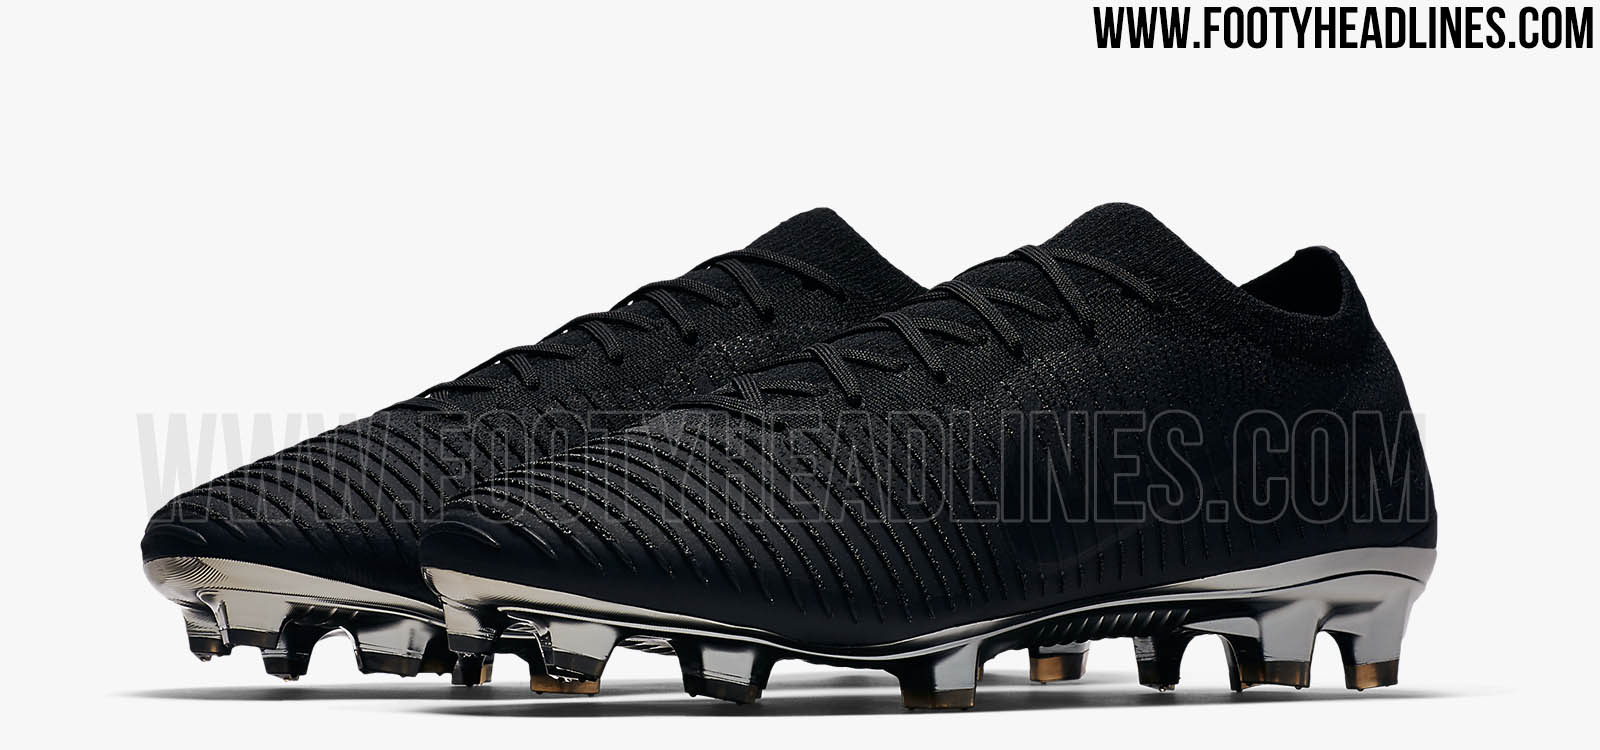 Nike today released the all-new Black / Silver Metallic Nike Flyknit Ultra  soccer boots, together with the second launch paint job, the Black and Gold  Nike ...